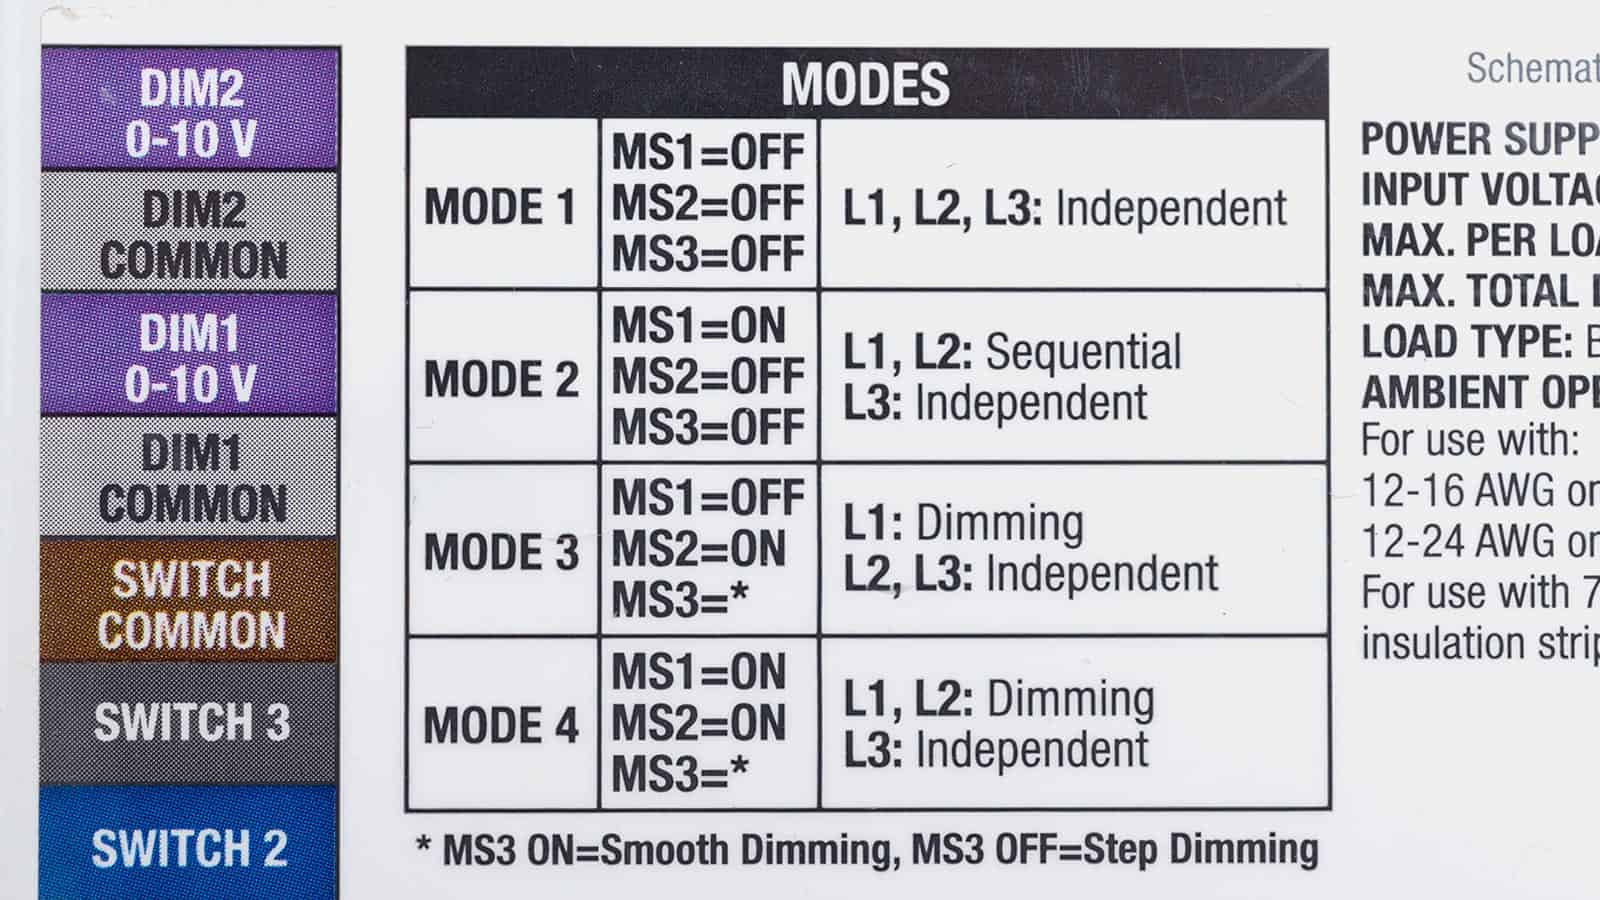 hight resolution of four modes allow for numerous configurations including dimming